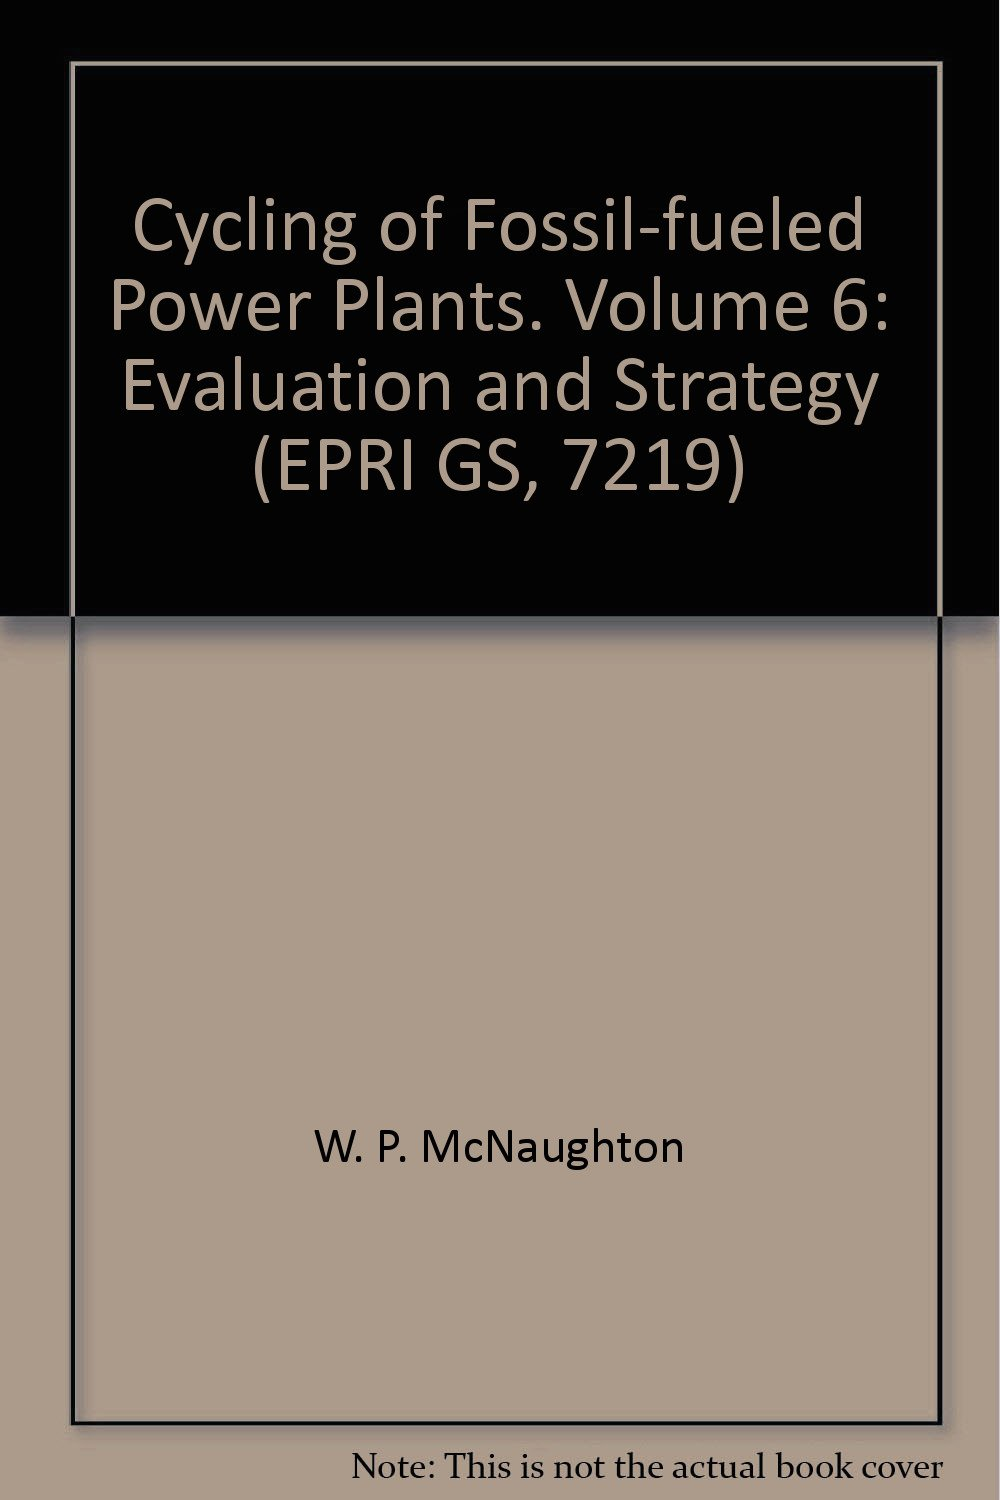 Cycling of Fossil-fueled Power Plants. Volume 6: Evaluation and Strategy (EPRI GS, 7219)